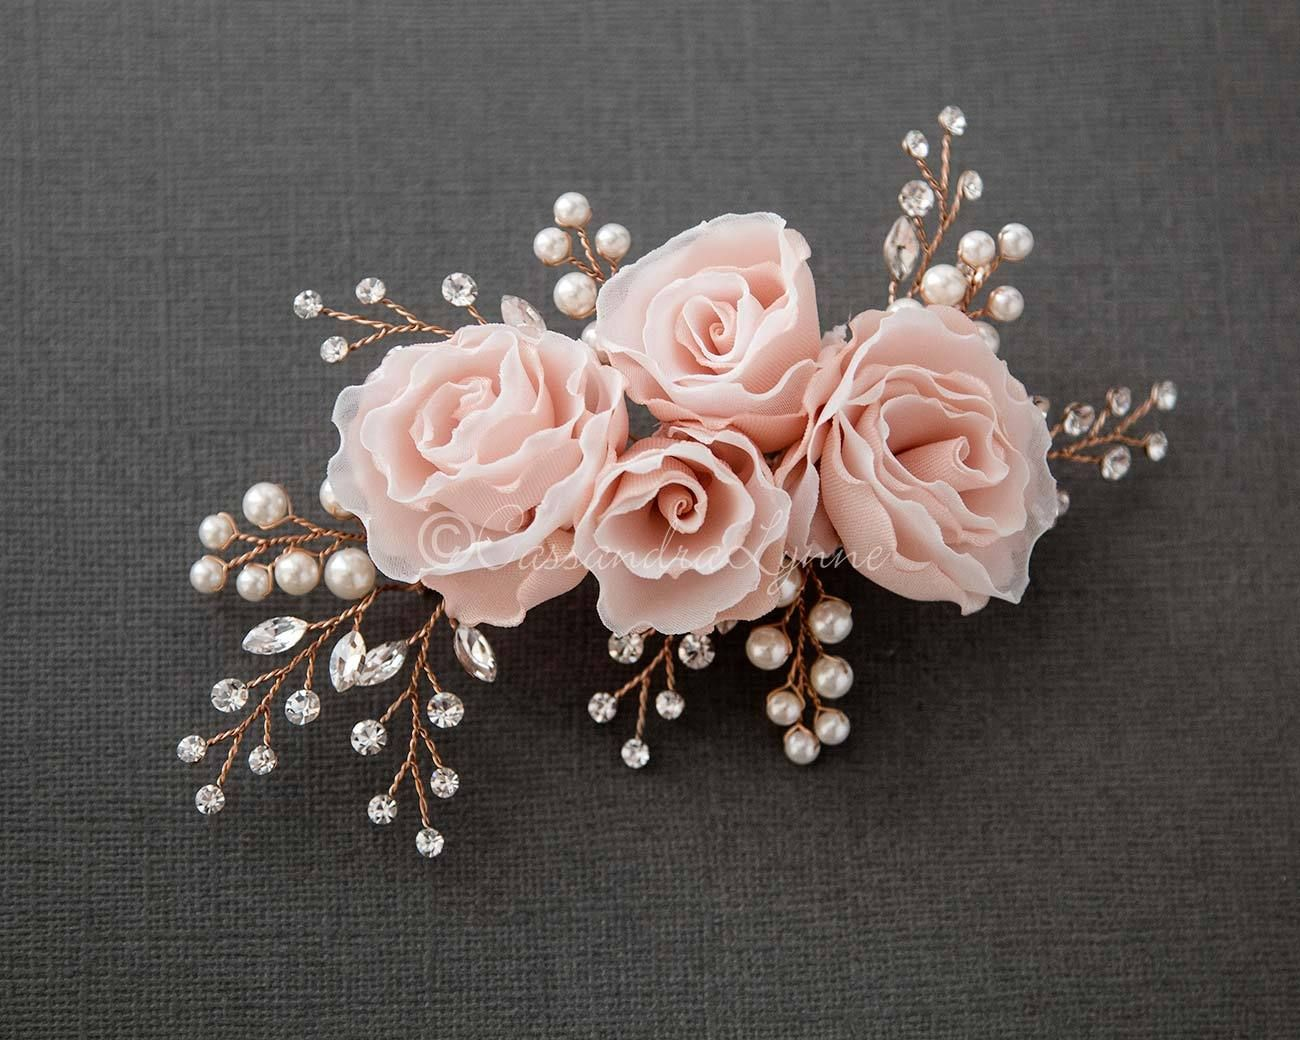 Beautiful Bridal Rose Flower Hairpin Floral Hair Clip for Wedding Party Luxury